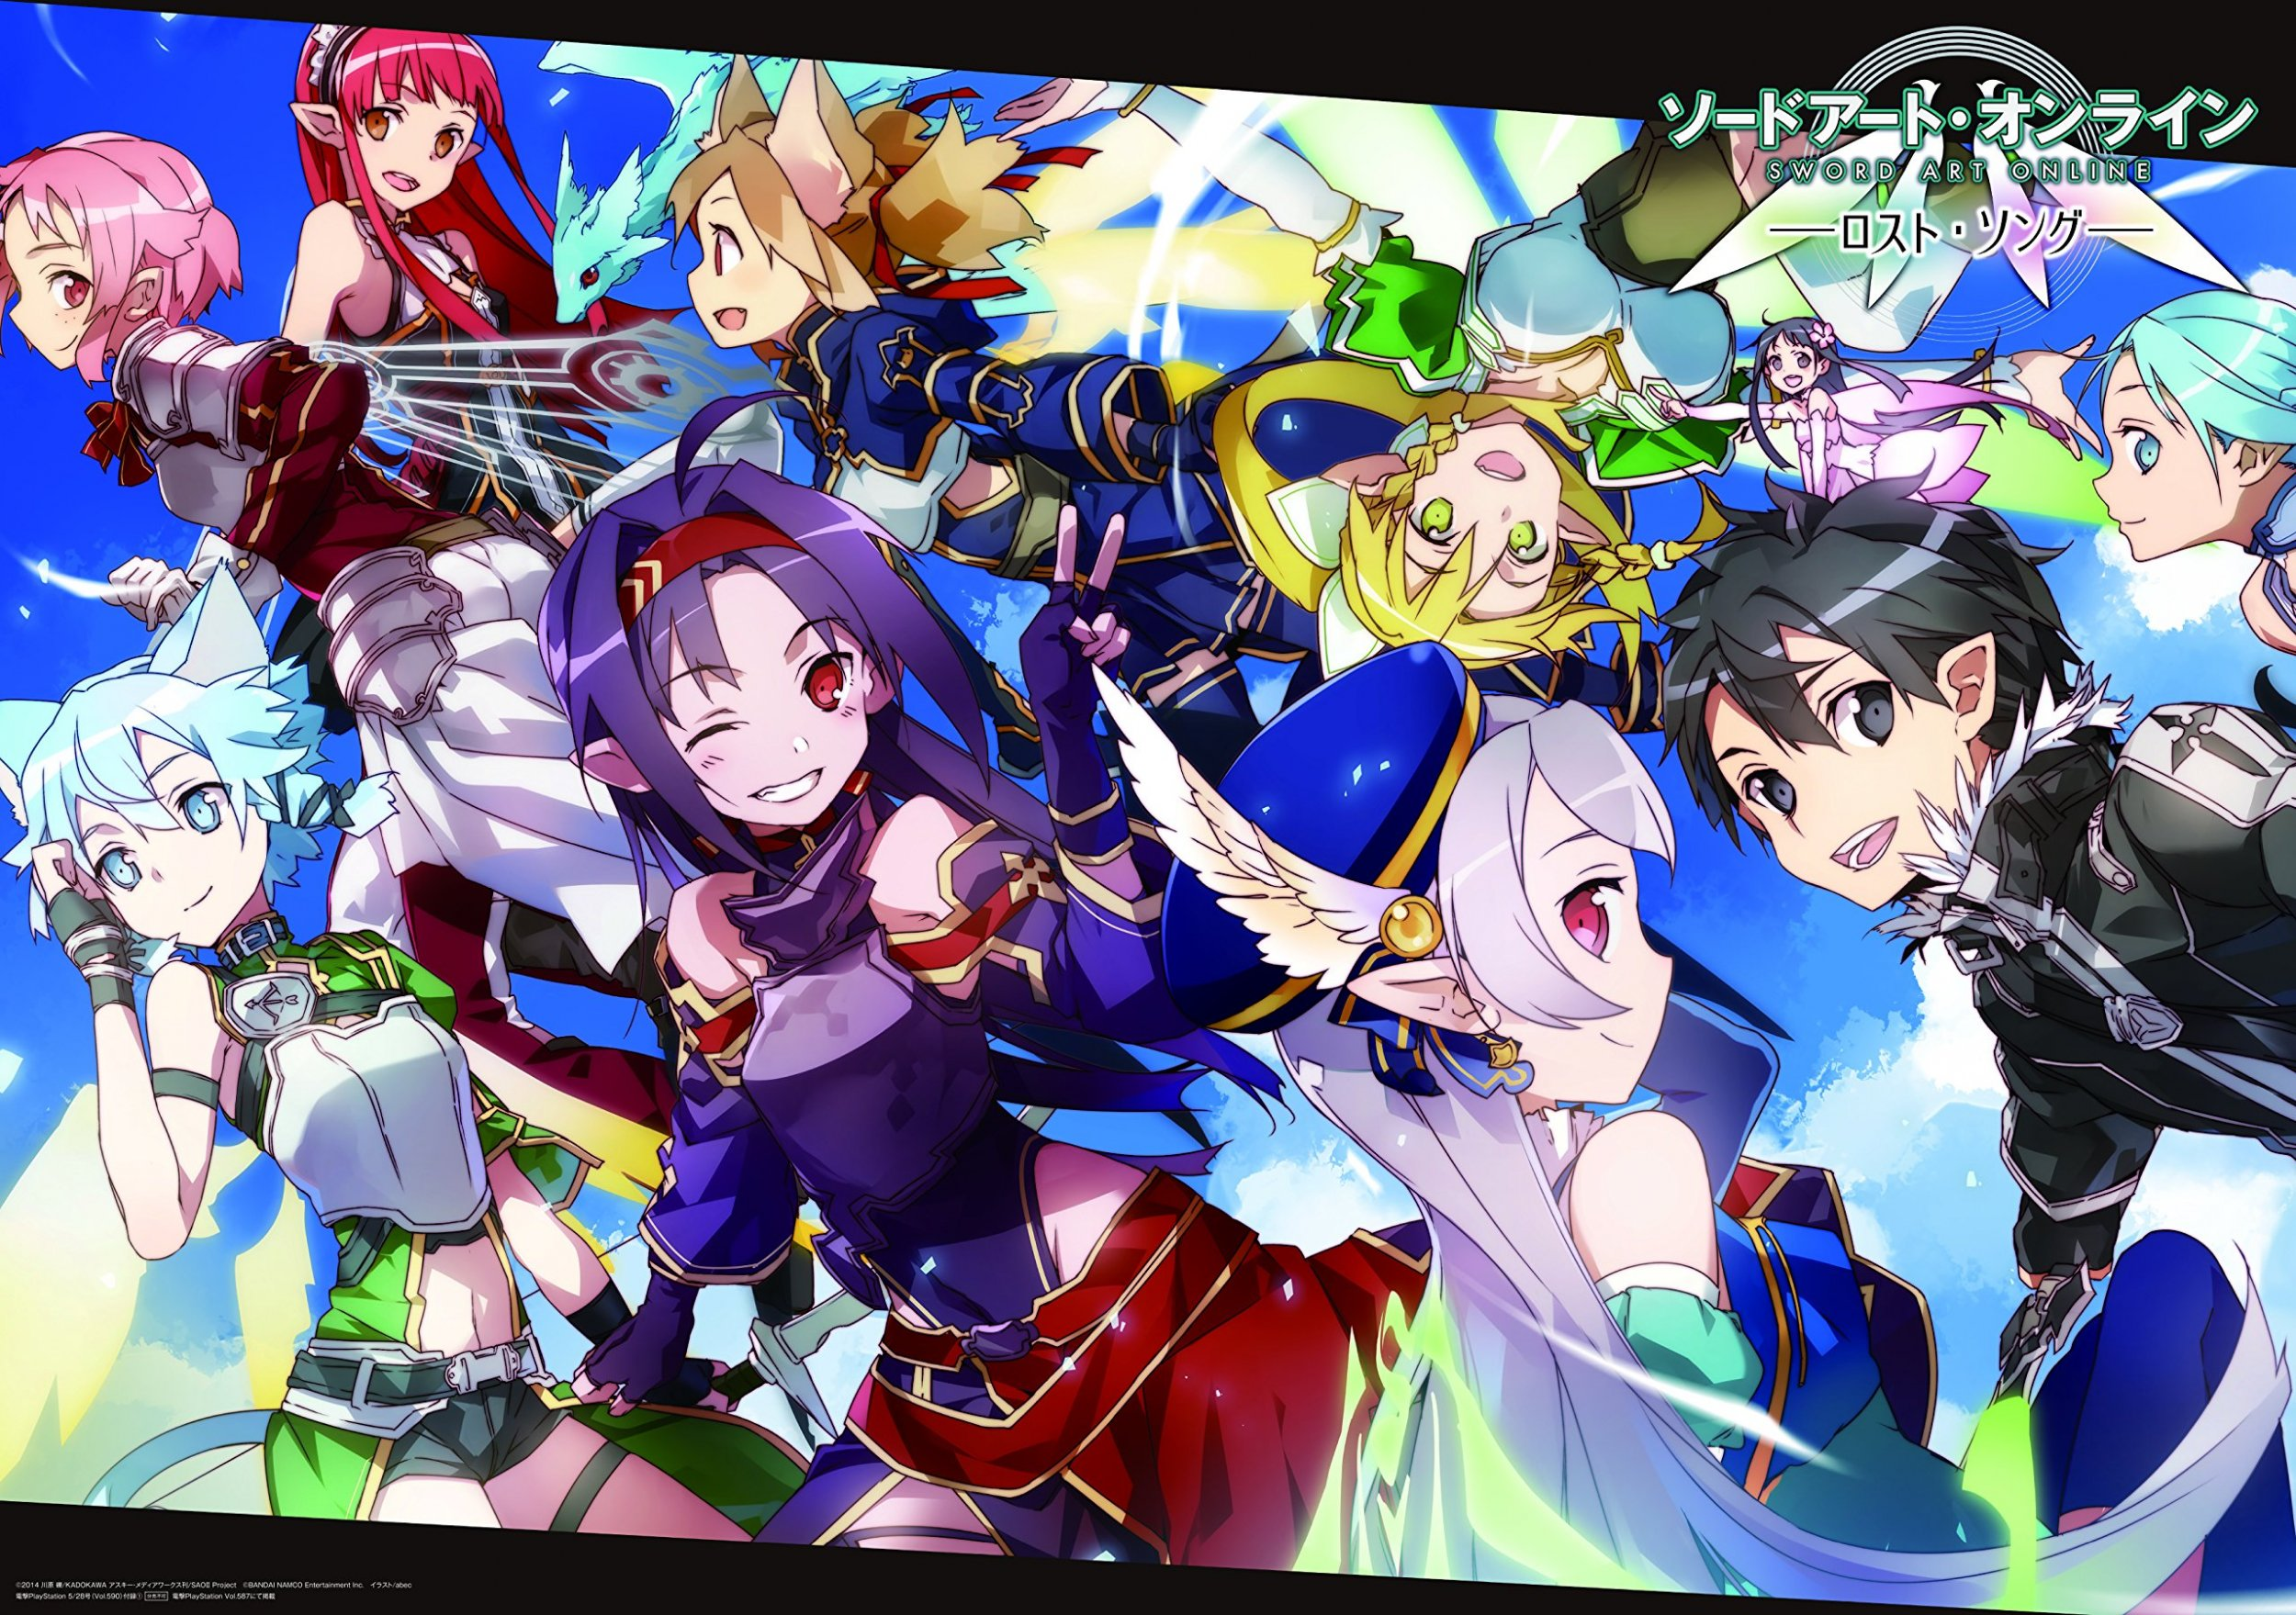 Sword Art Online poster (Vol.590 supplement) (May 28, 2015)